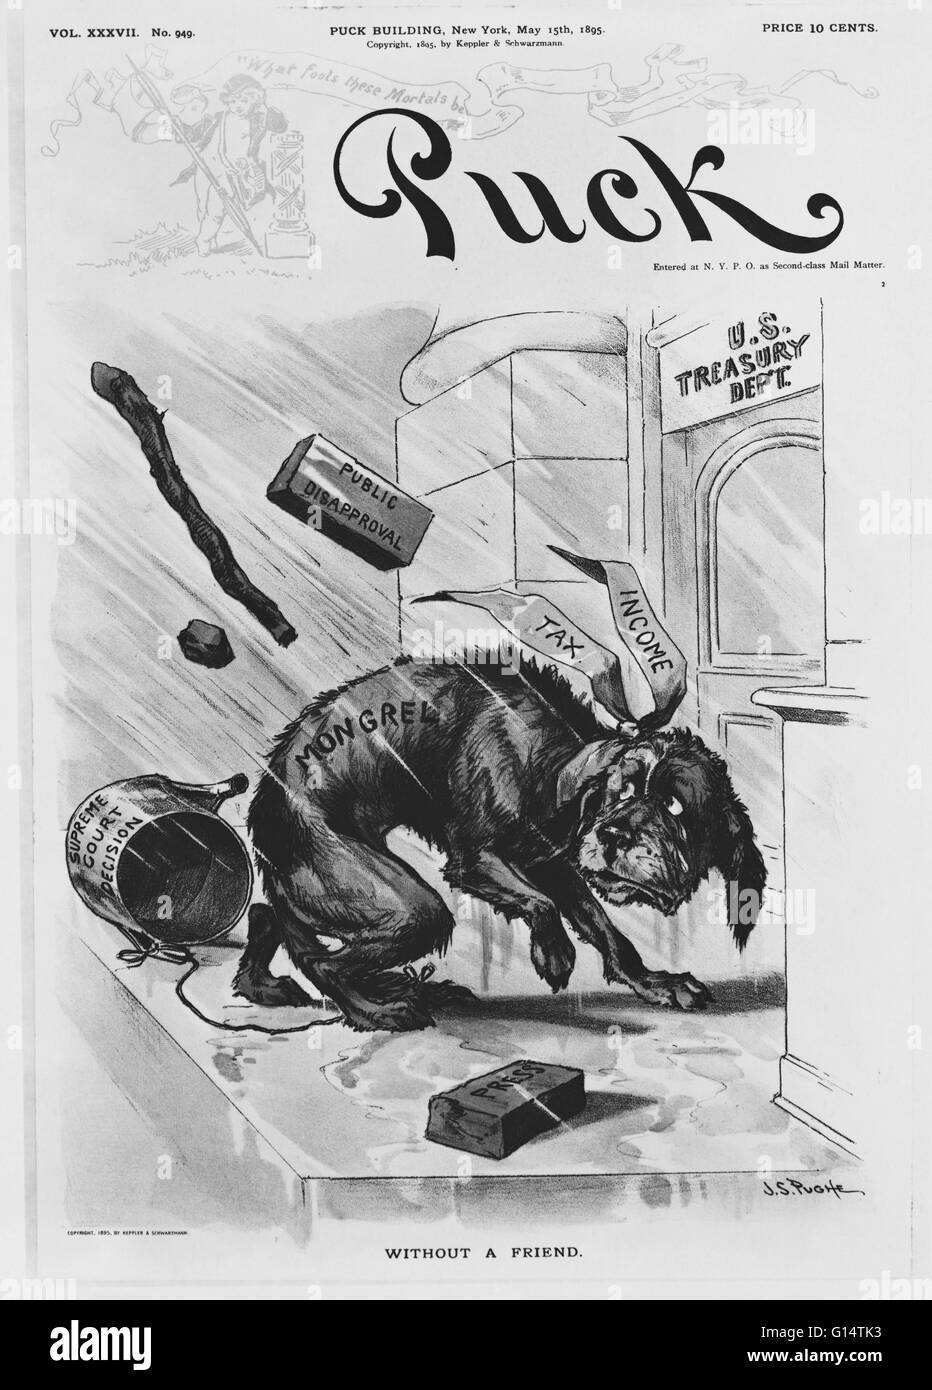 1895 political cartoon 'Without a Friend' from Puck magazine, satirizing the income tax debate. That year, - Stock Image